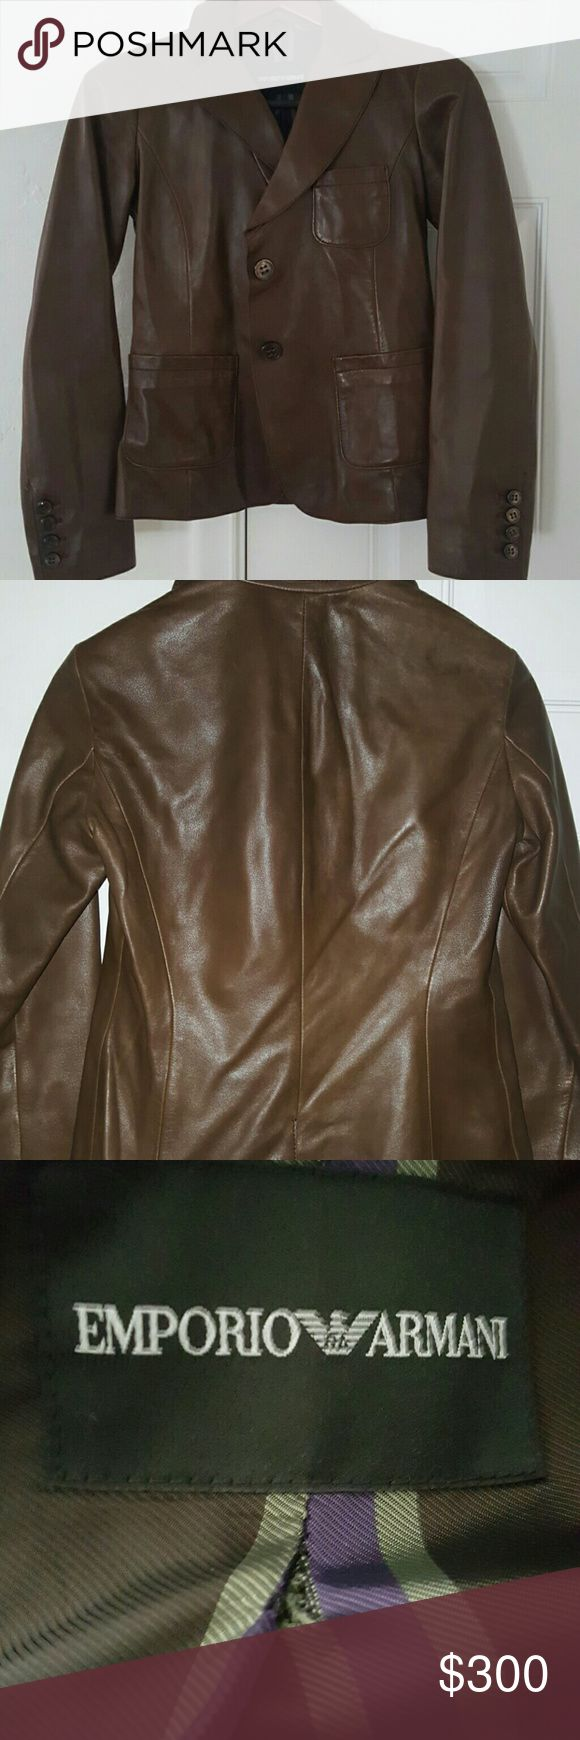 Emporio Armani Leather jacket Lambskin jacket - so soft. You are going to want to wear it everywhere. Classic fitted jacket. More pictures upon request. I noticed a small tear just below the tag (photo 3) I believe it is a 44 based on the tag, fits about a medium. Minimal signs of wear! Get it while it's still available! Emporio Armani Jackets & Coats